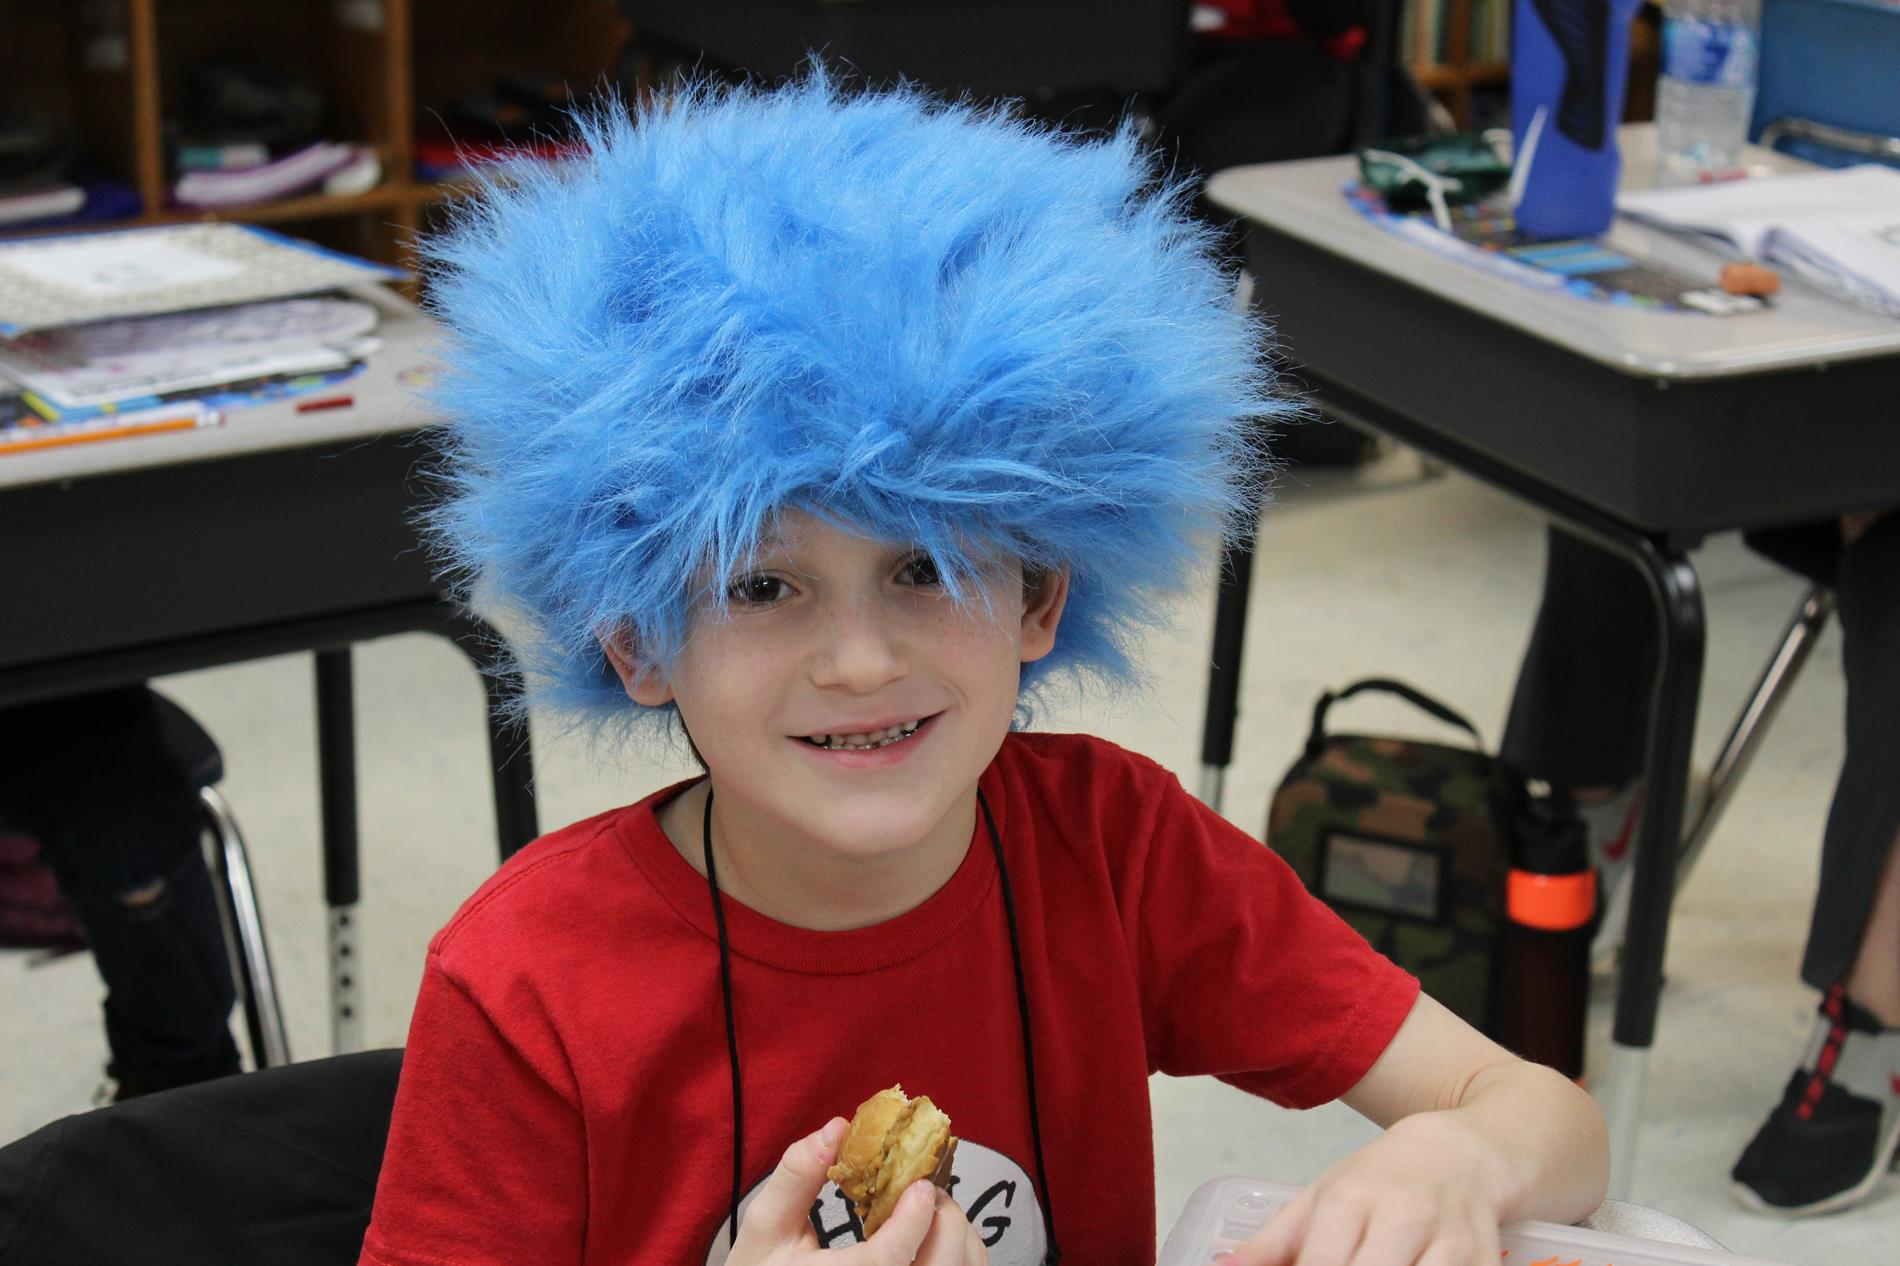 student dressed as thing 1